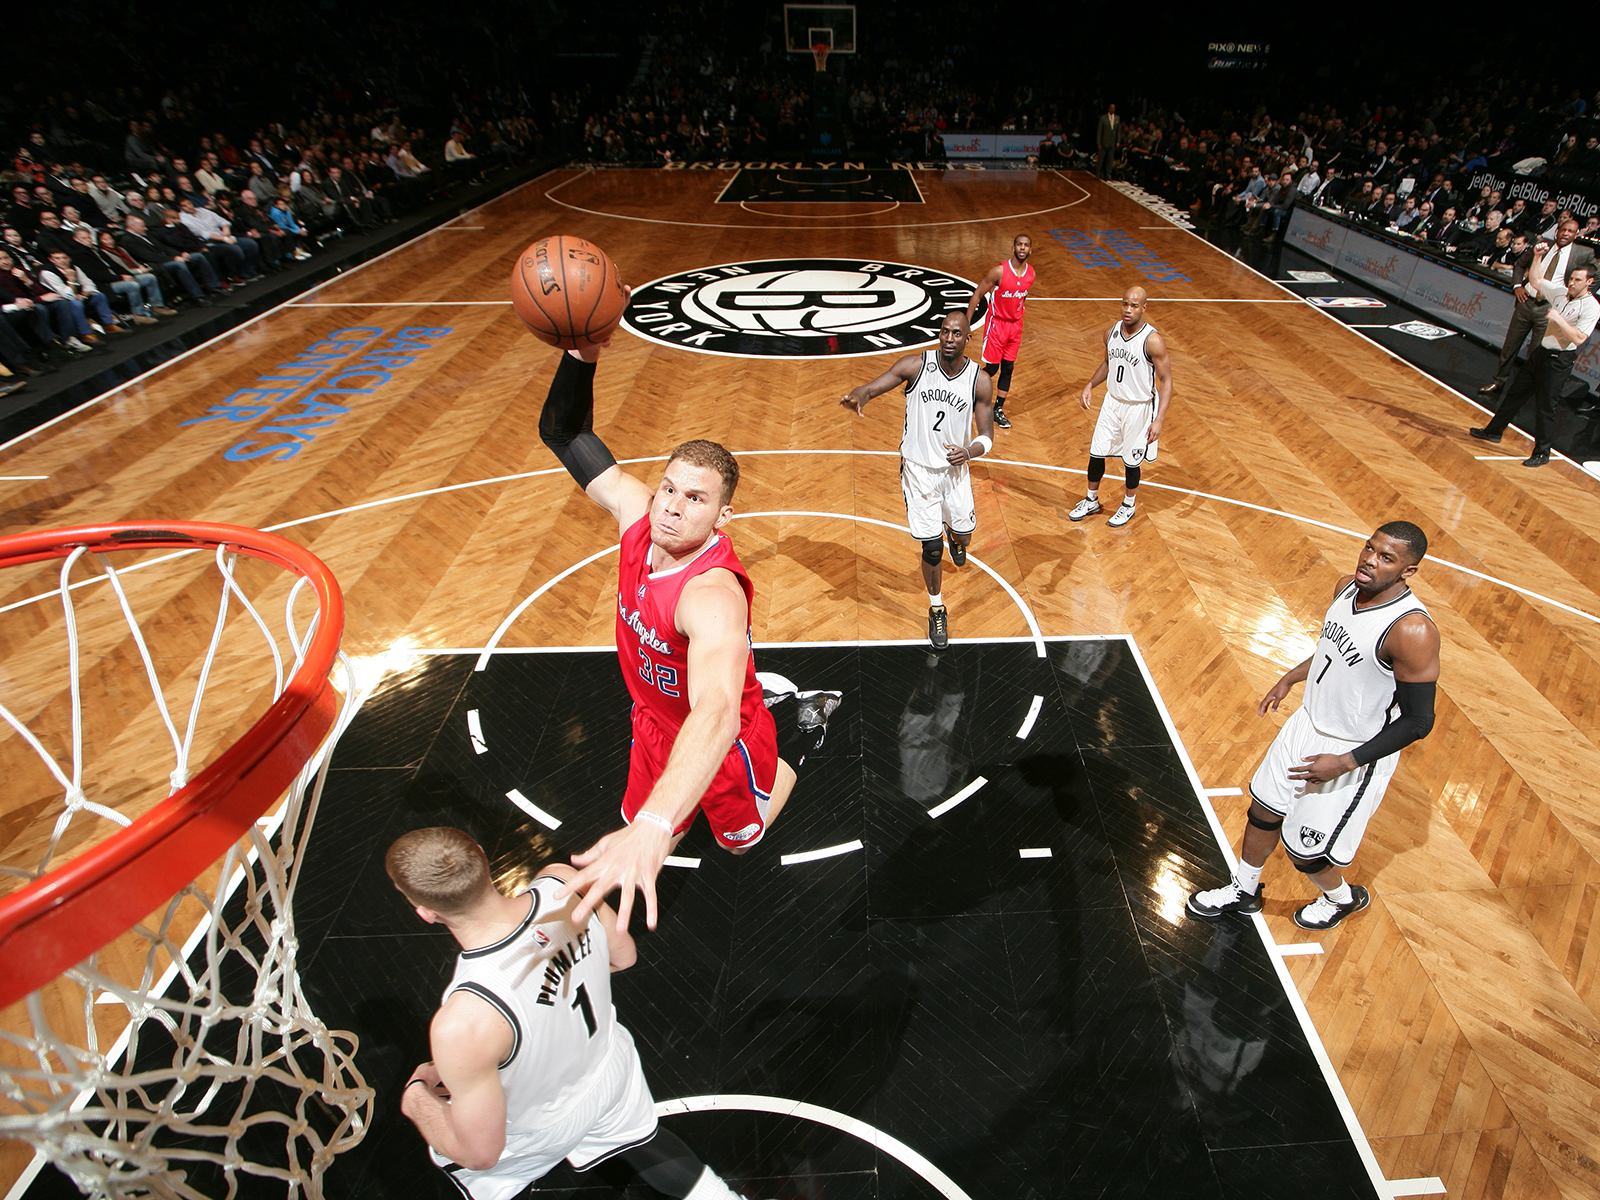 Blake Griffin uses Mason Plumlee's shoulder as a boost for a big one-handed dunk against the Brooklyn Nets.